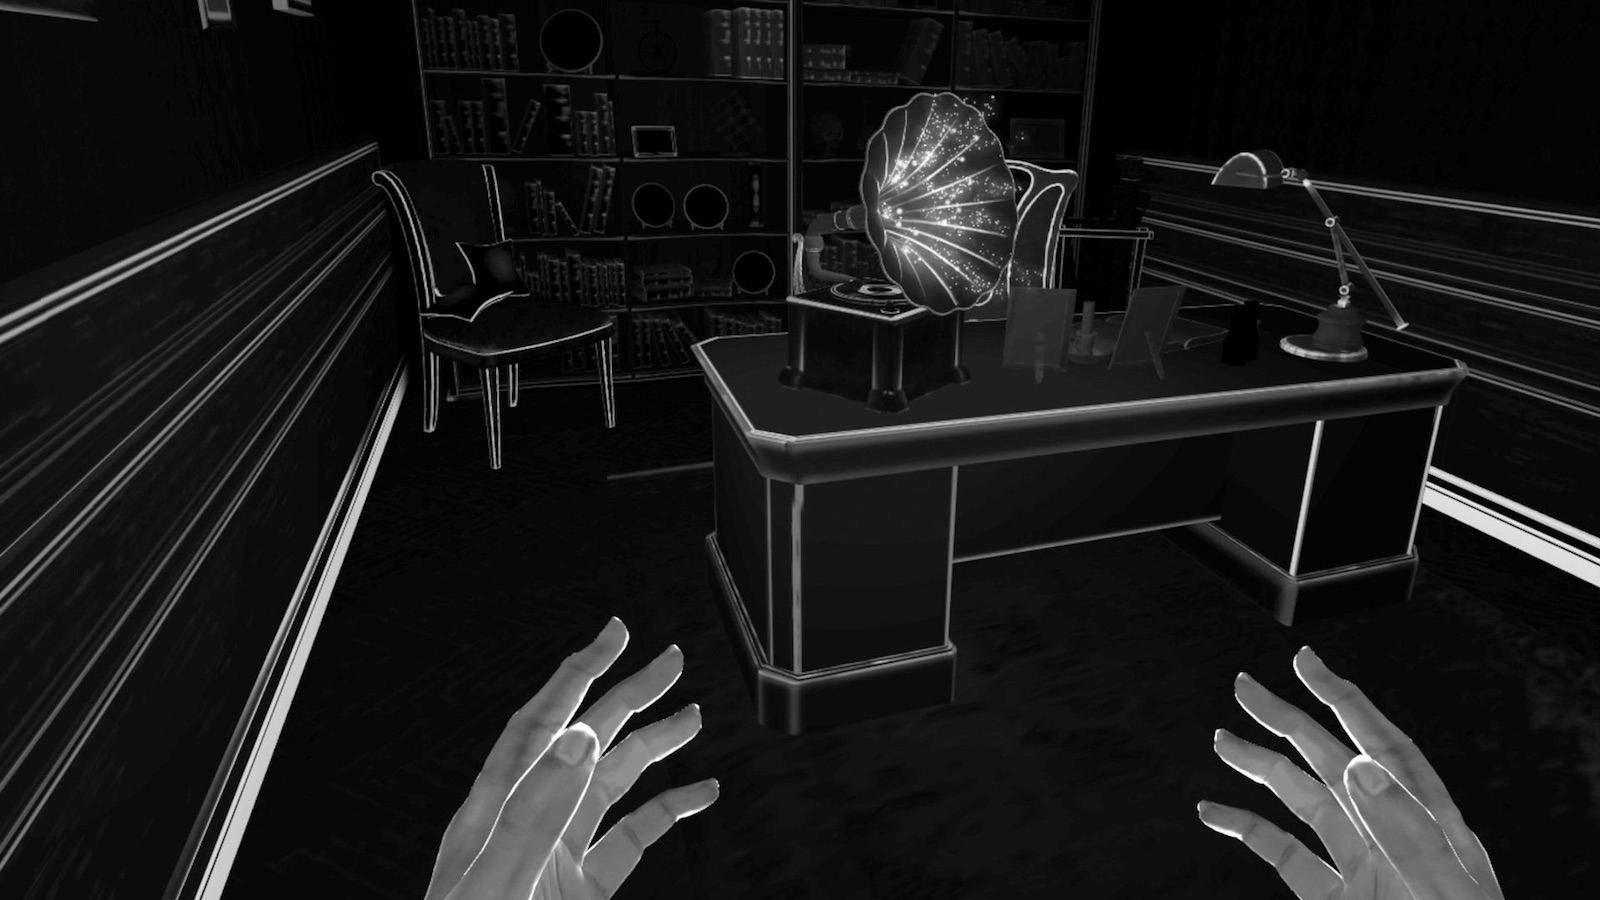 Blind Is A Unique Upcoming VR Game That Uses Echolocation To Find Your Way Around